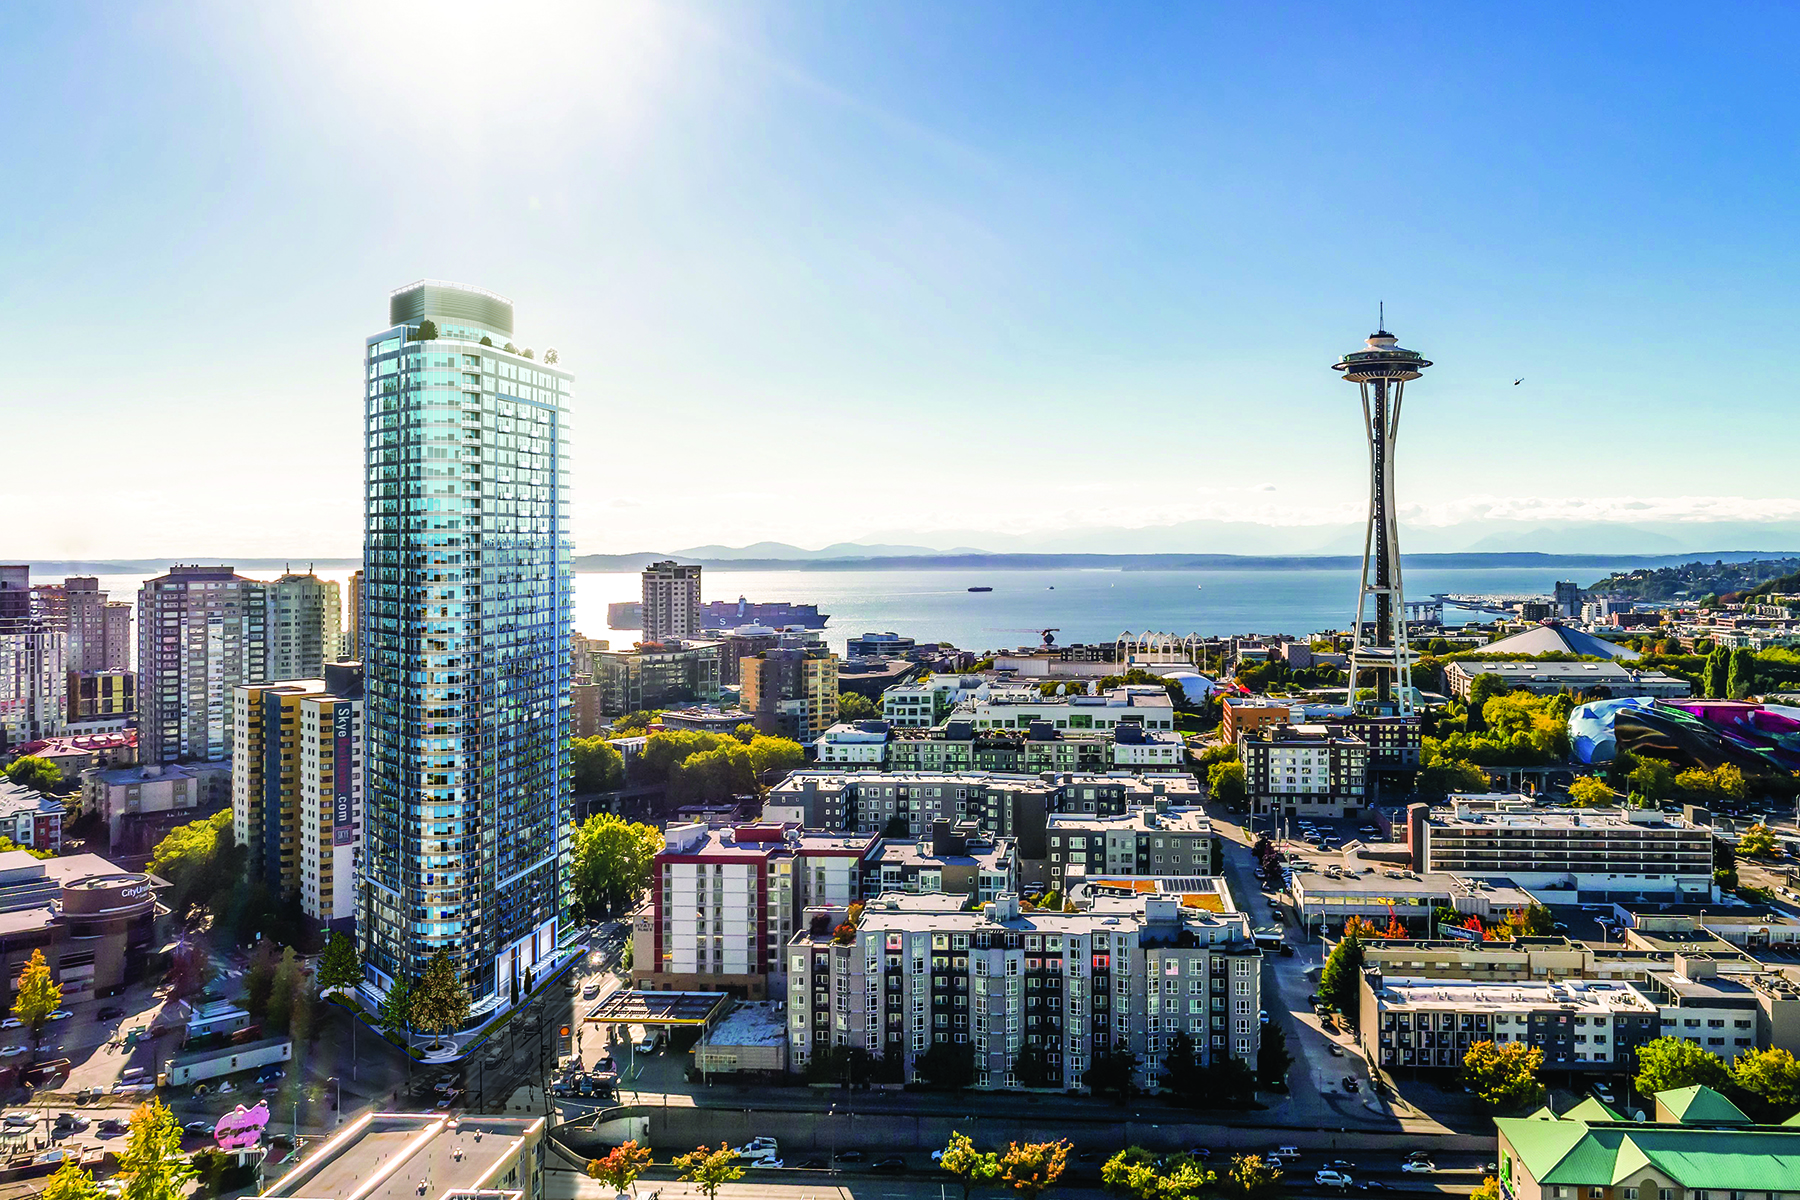 Condominium for Active at 600 Wall St 3307, Seattle 600 Wall St 3307 Seattle, Washington 98121 United States